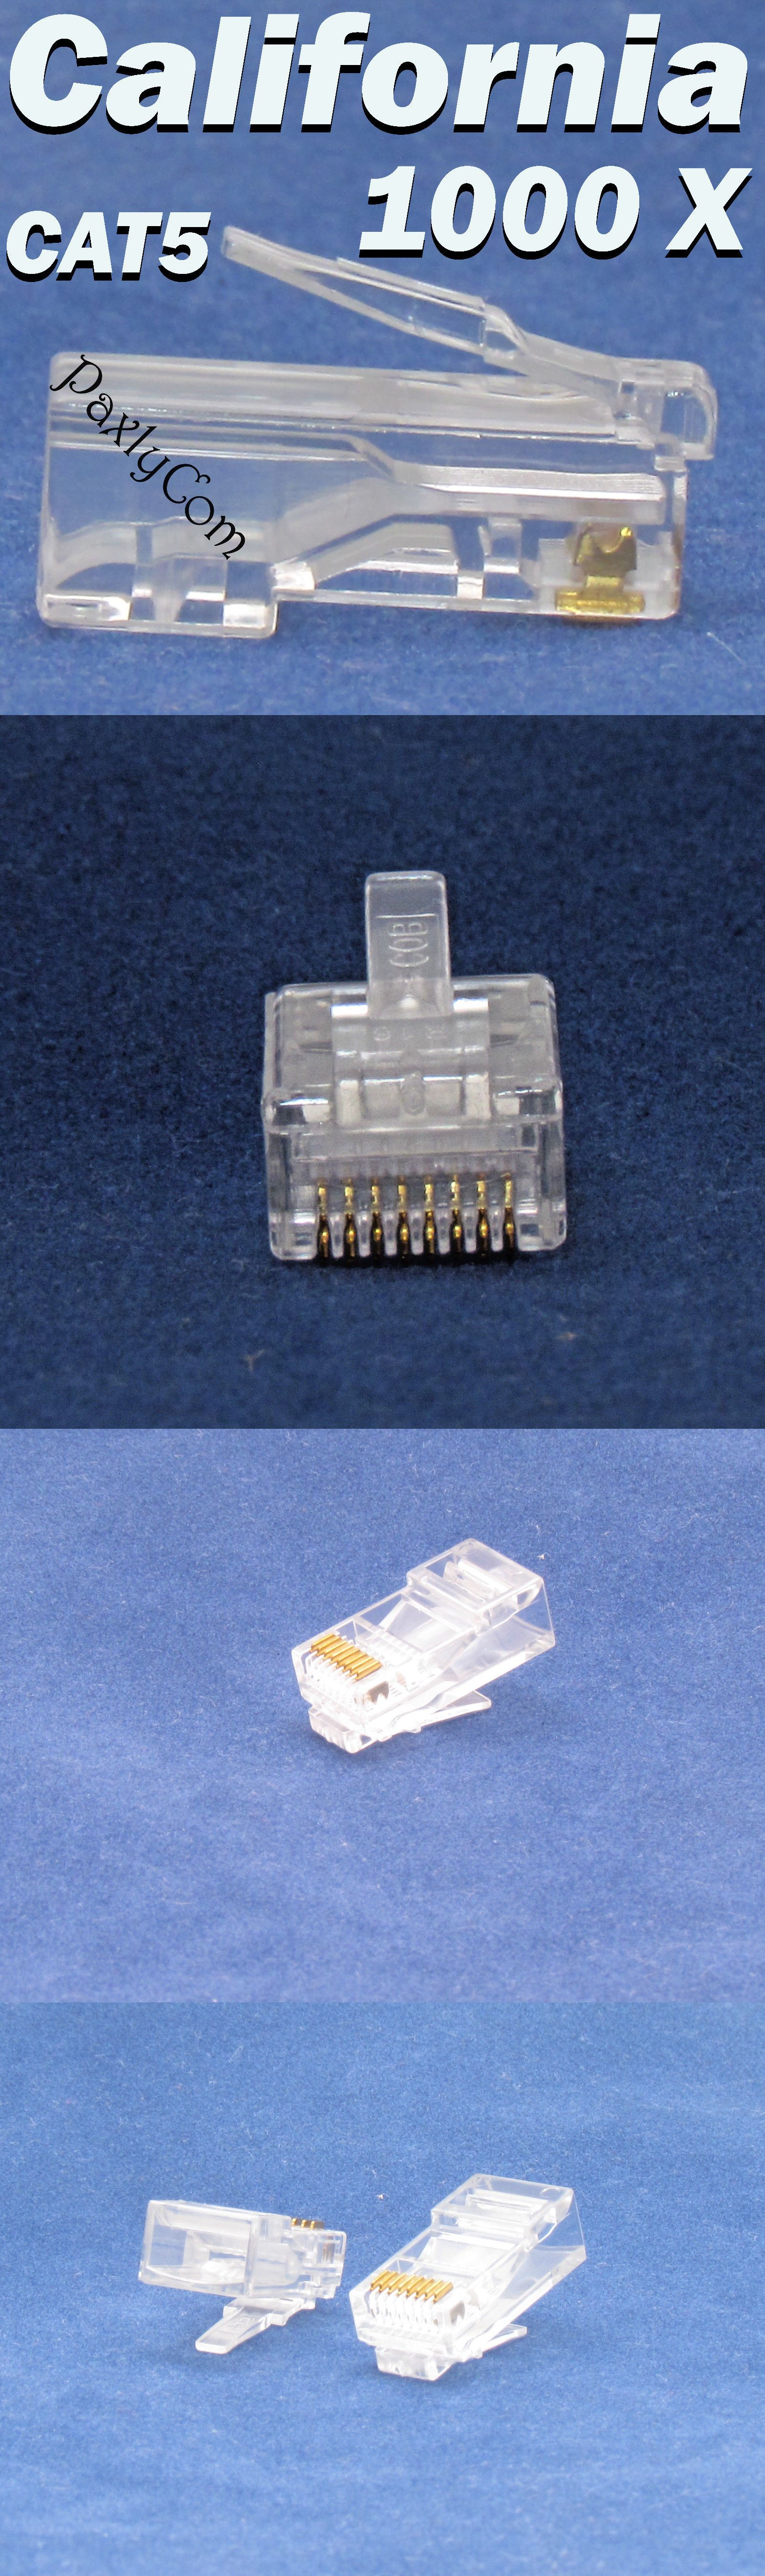 hight resolution of plugs jacks and wall plates 67279 1000 x rj45 end plug cat5 cat5e modular lan connector internet ethernet cable 8p buy it now only 17 35 on ebay